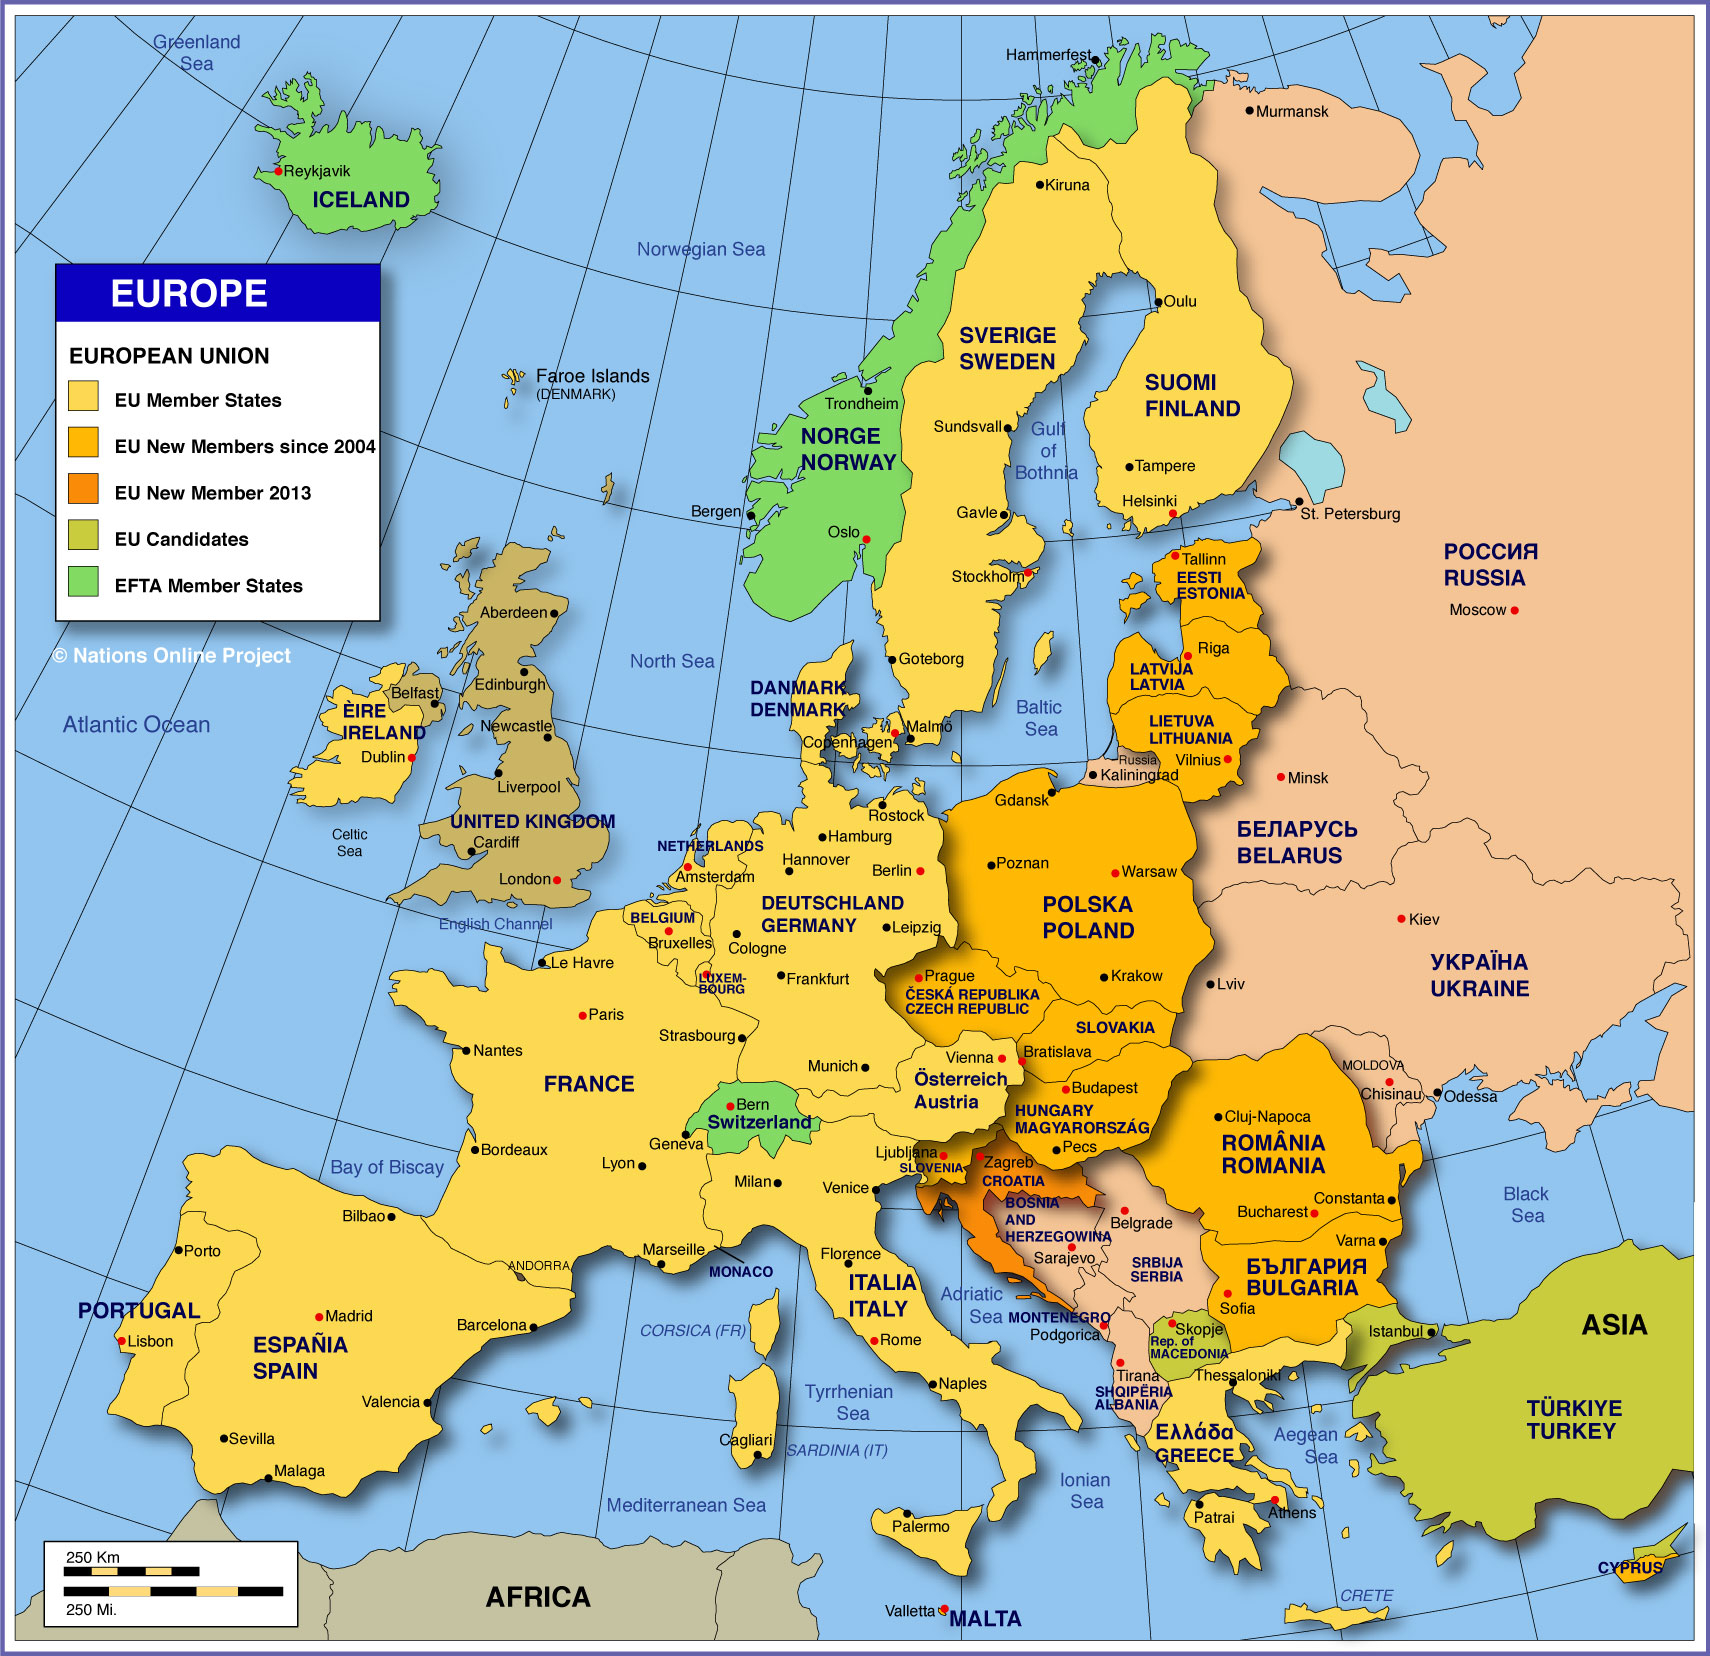 Map Of The Whole World Labeled.Map Of Europe Member States Of The Eu Nations Online Project